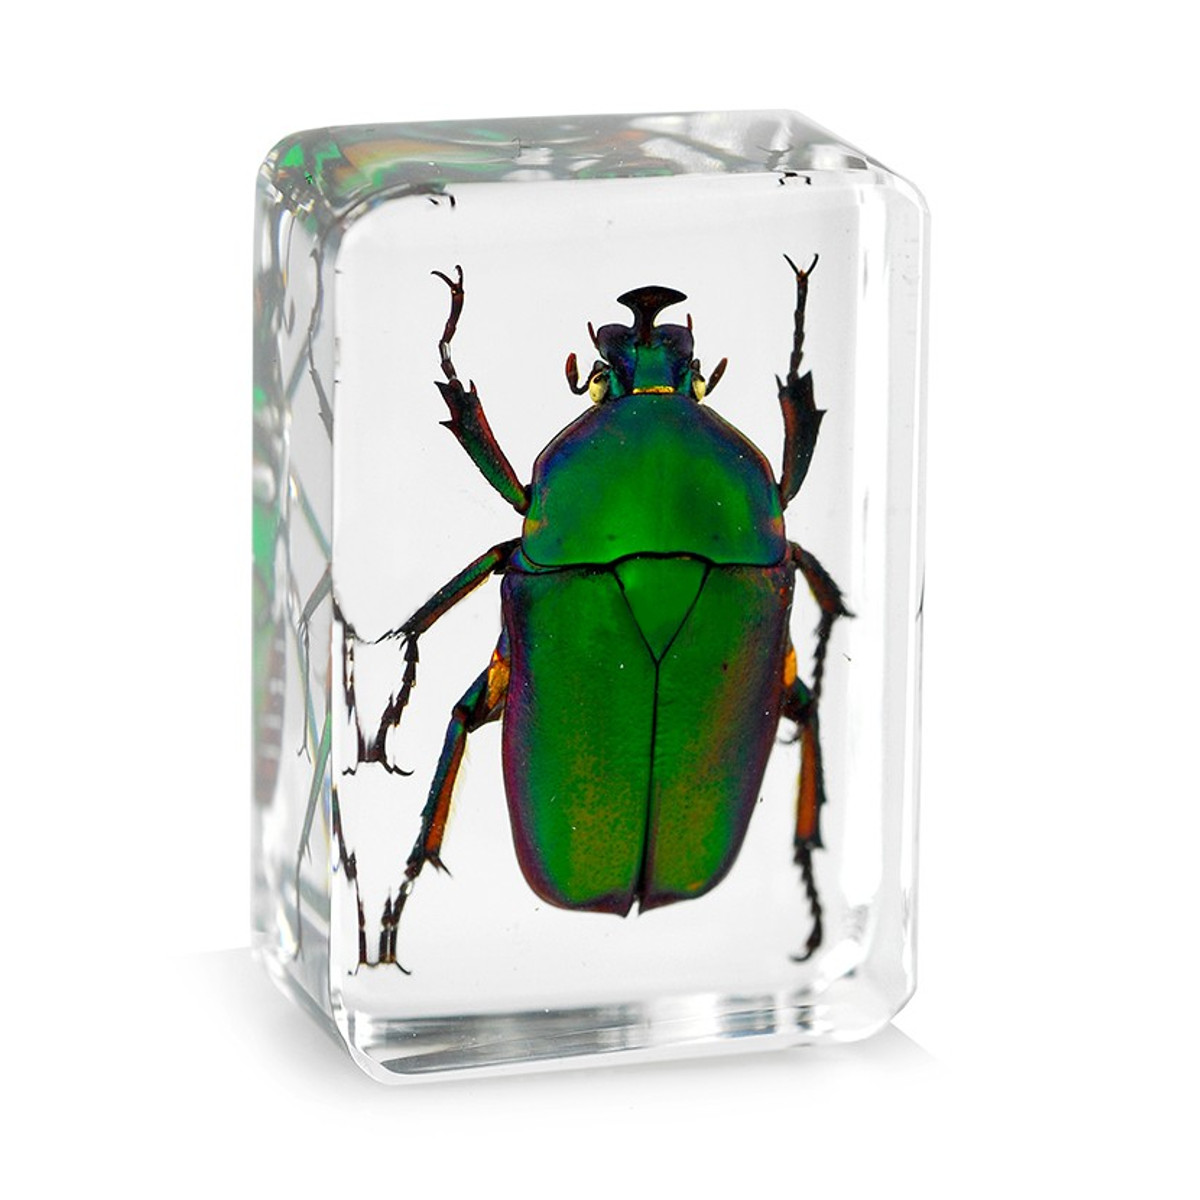 4.5x3x2cm Transparent Insect Specimen Rose Chafer Beetle Animal Insect Display Specimen Educational Supply Biological Collection